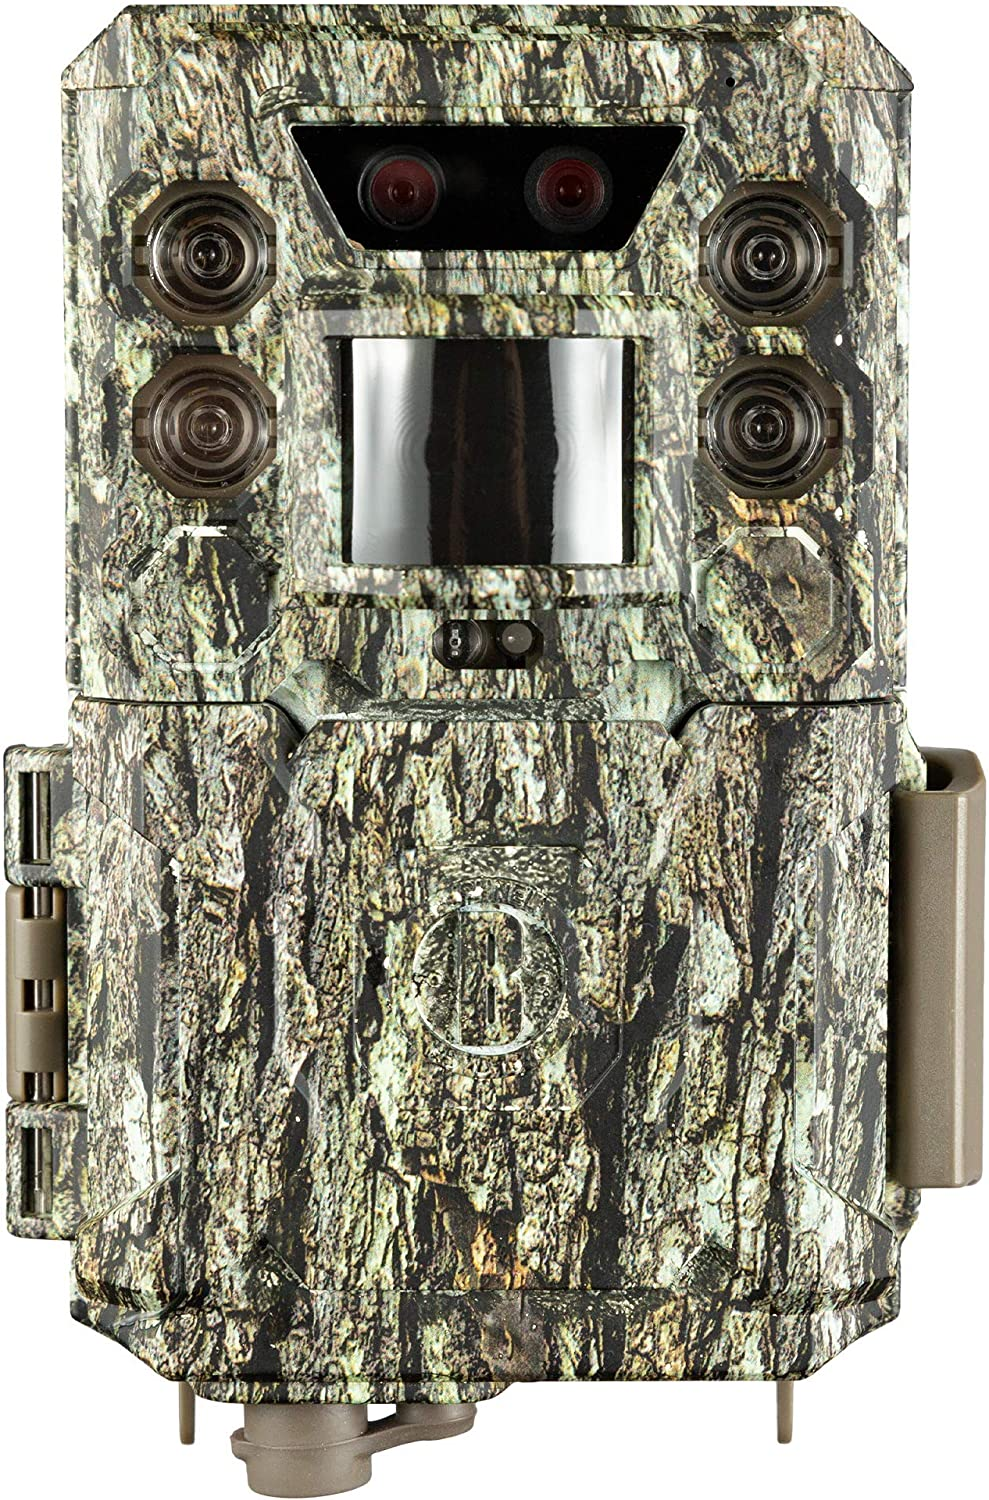 Bushnell 30MP CORE Trail Camera, Dual Sensor, Low Glow_119975C